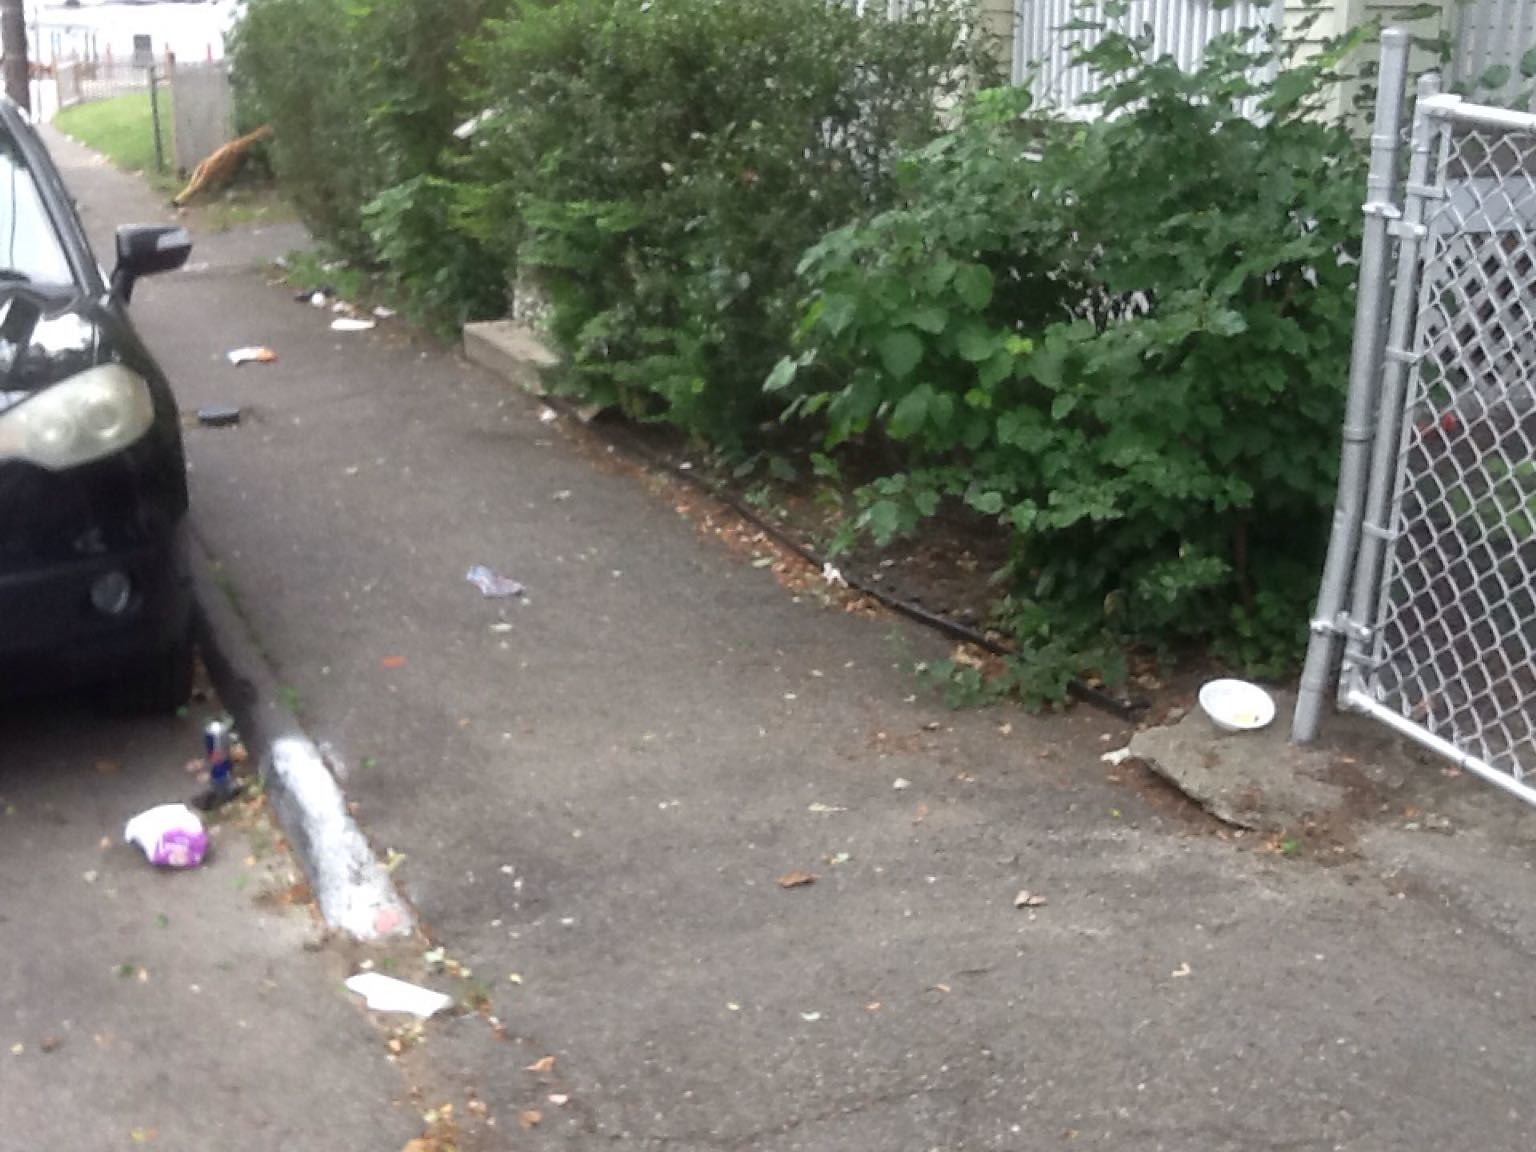 Tenants and their visitors at this property consistently trash the street and the property. The main source of the problem is on the 1st floor of building #4 in the multi-unit apartment house.